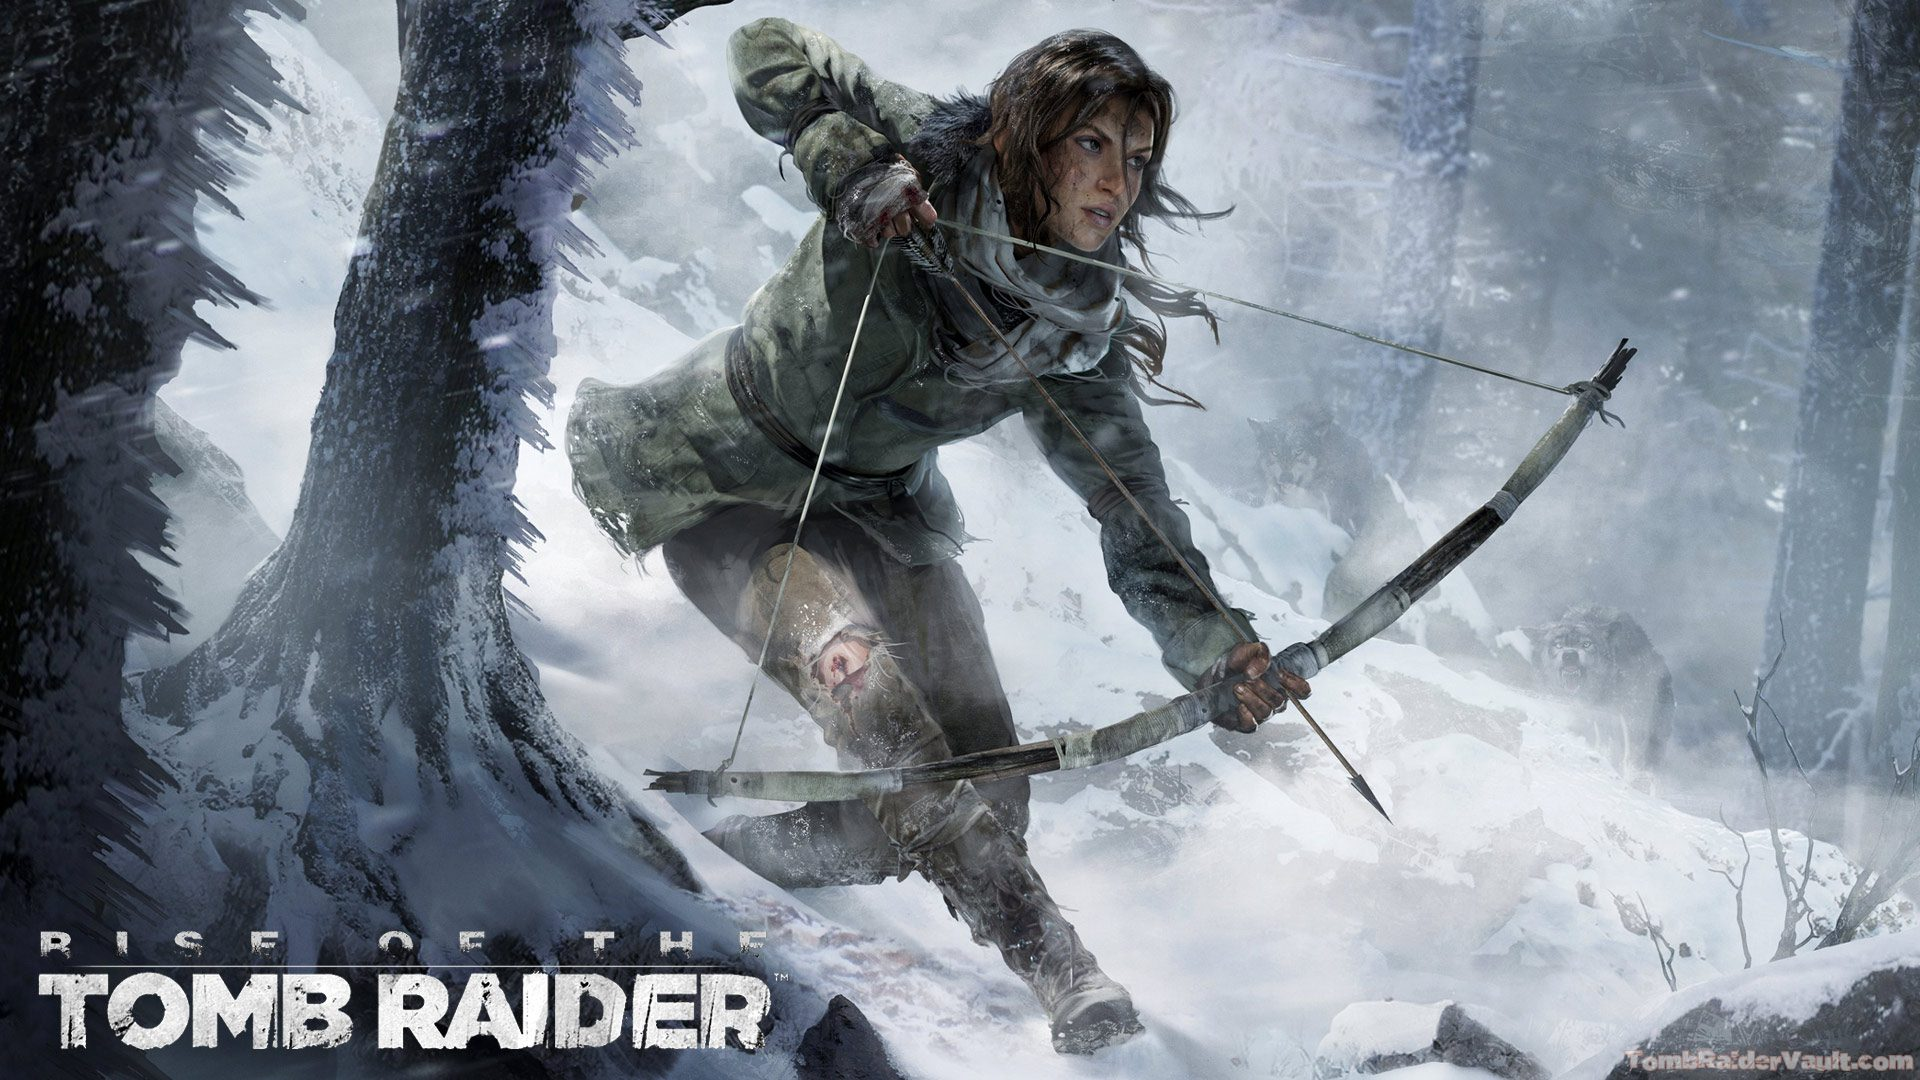 Rise Of The Tomb Raider Wallpapers Hd 1080p 1920x1080 Desktop 03